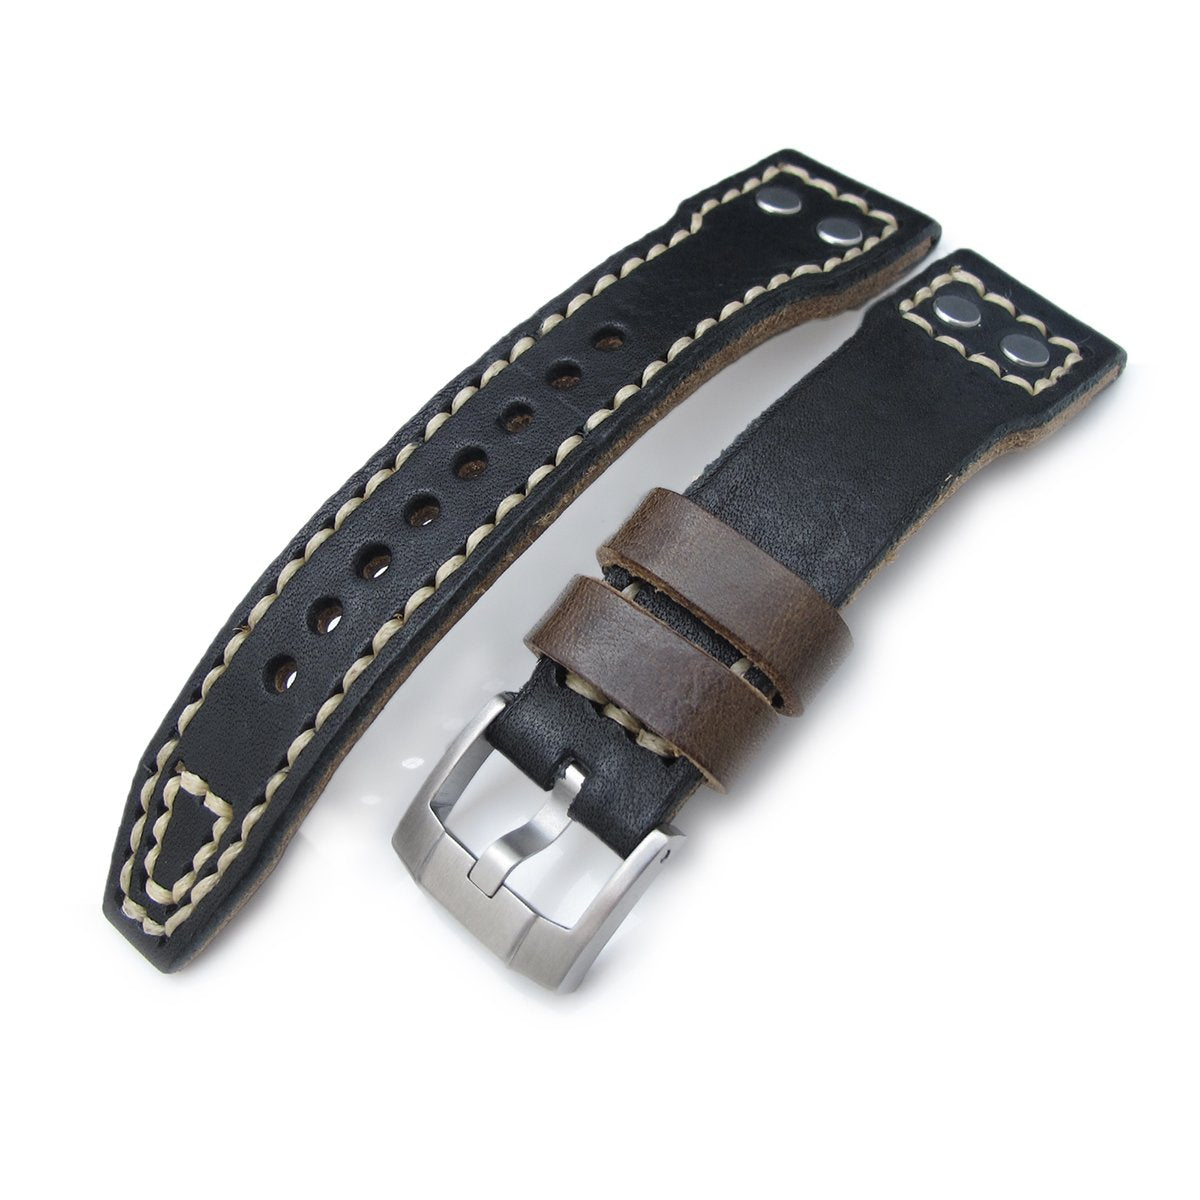 21mm 22mm MiLTAT Black Pull Up Aniline Italian Leather Watch Strap Rivet Military strap Strapcode Watch Bands